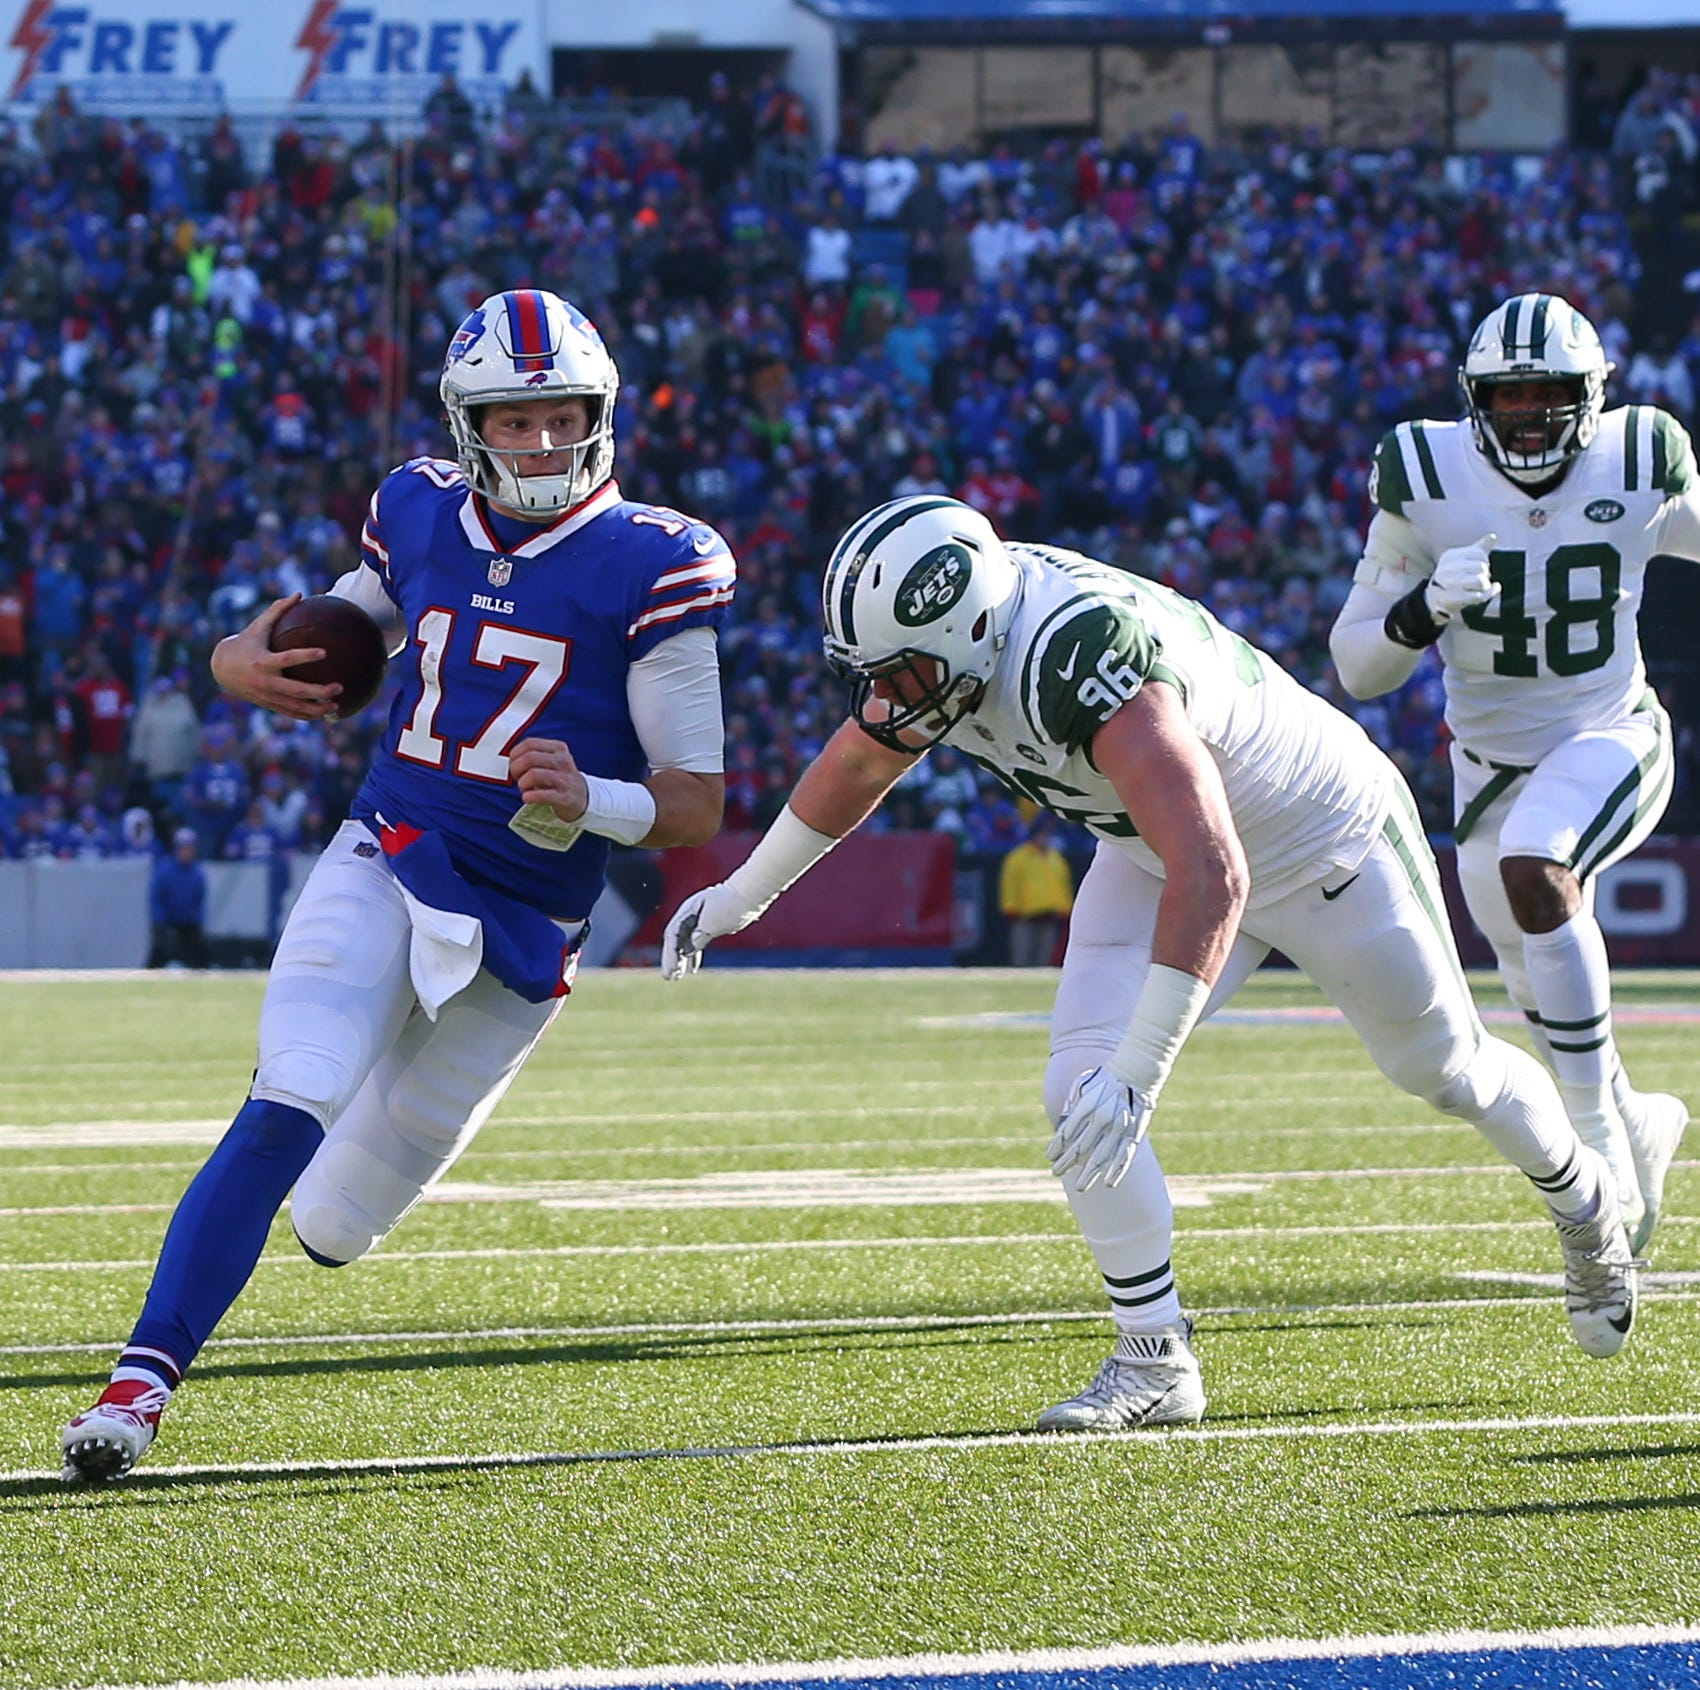 Final score and recap: New York Jets 27, Buffalo Bills 23